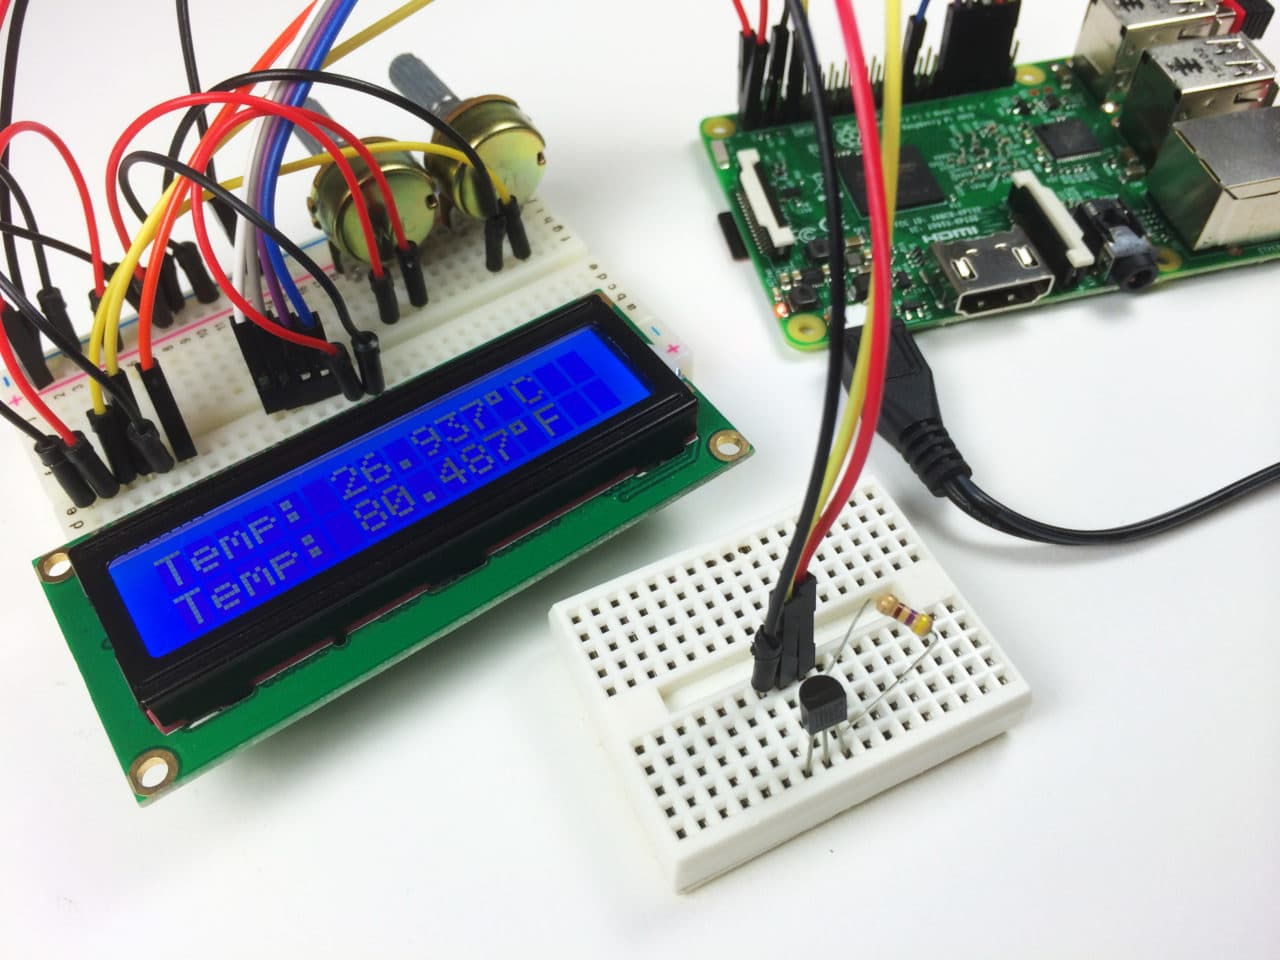 How To Setup An Lcd Touchscreen On The Raspberry Pi Prs 24 Se Wiring Diagram Free Download Ds18b20 Temperature Sensor Tutorial